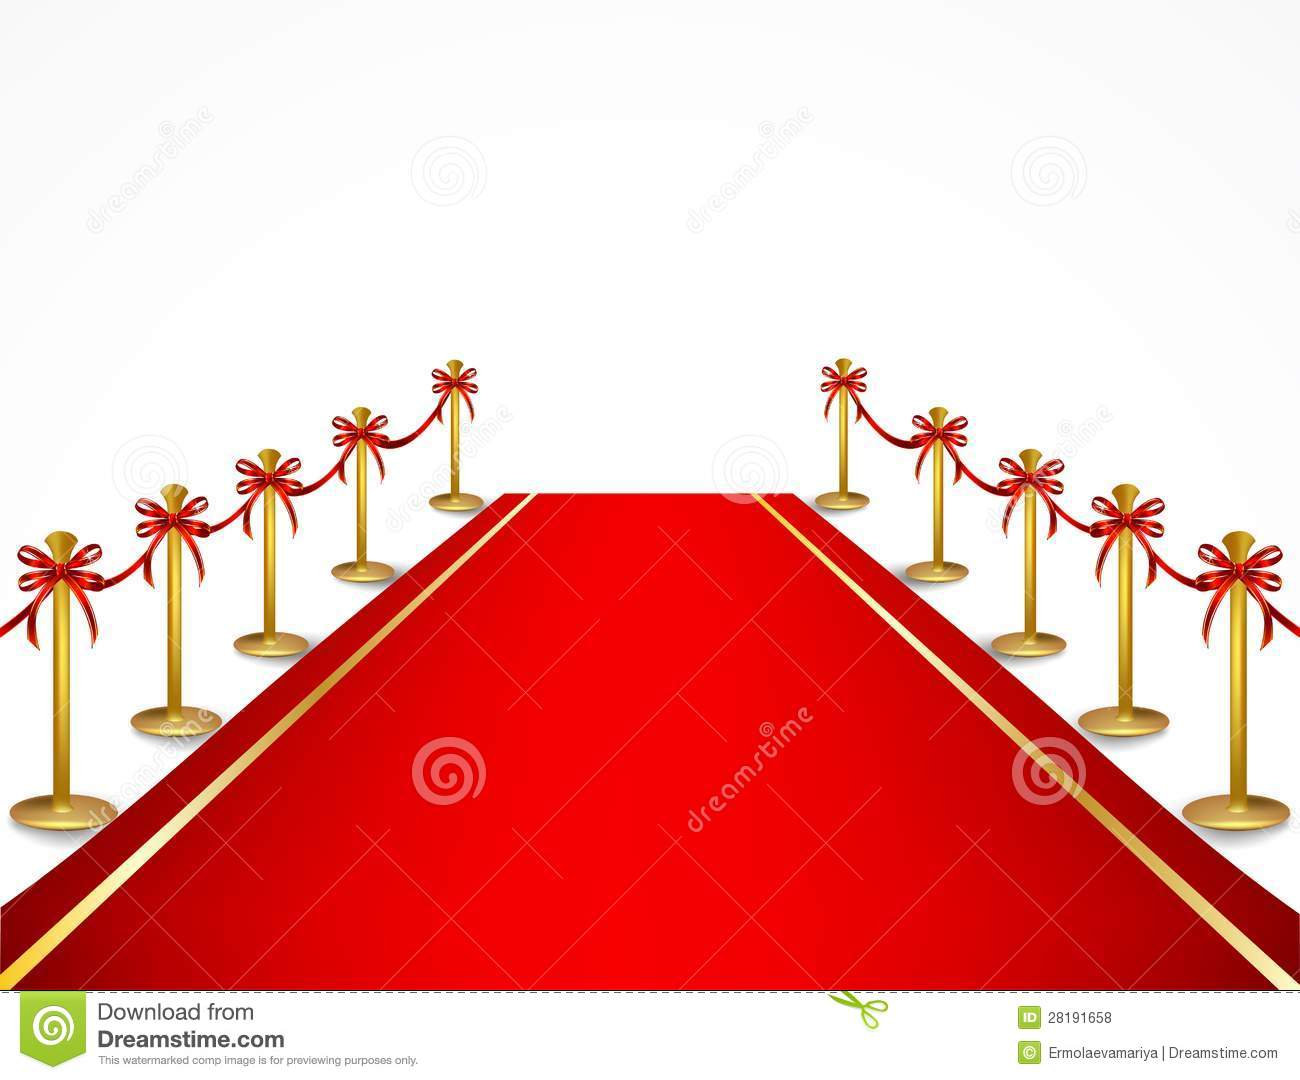 Red Carpet And Velvet Rope Vector Royalty Free Stock